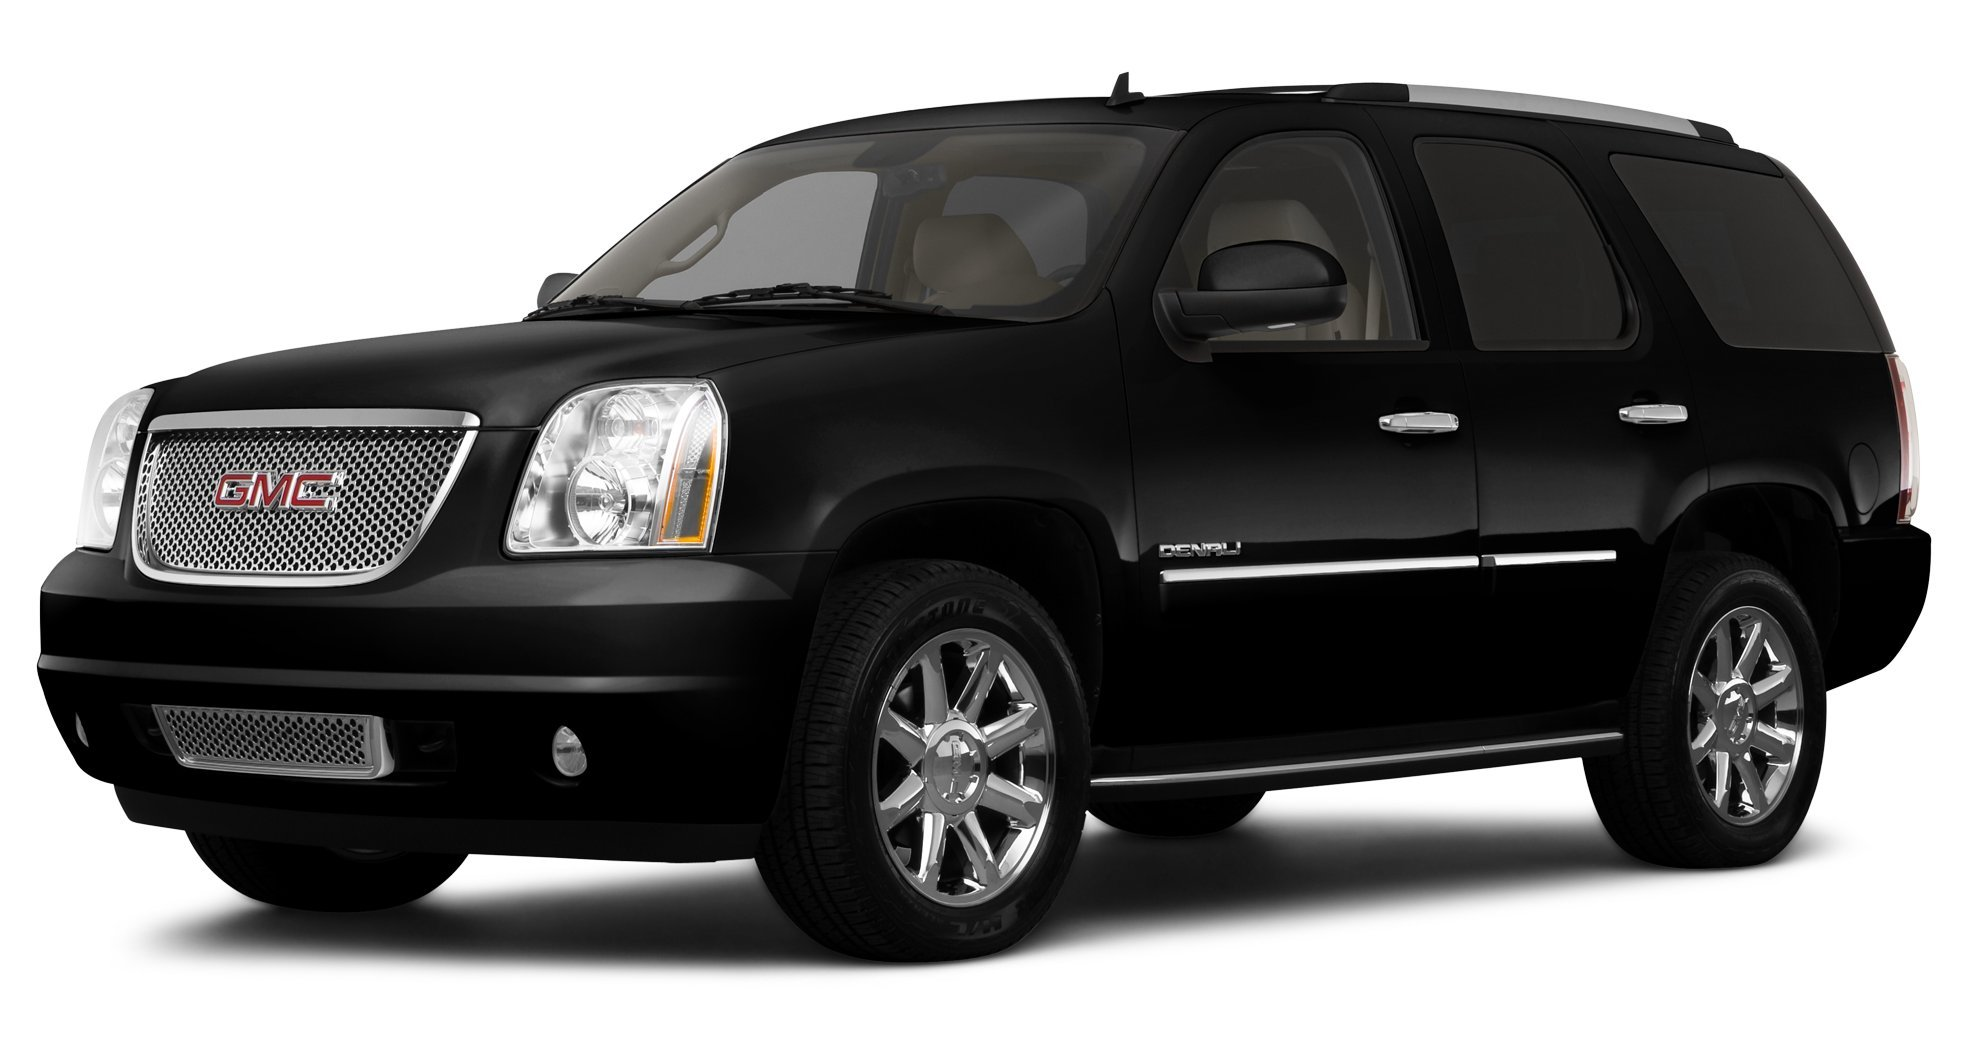 Amazoncom 2010 Ford Expedition Reviews Images And Specs Vehicles